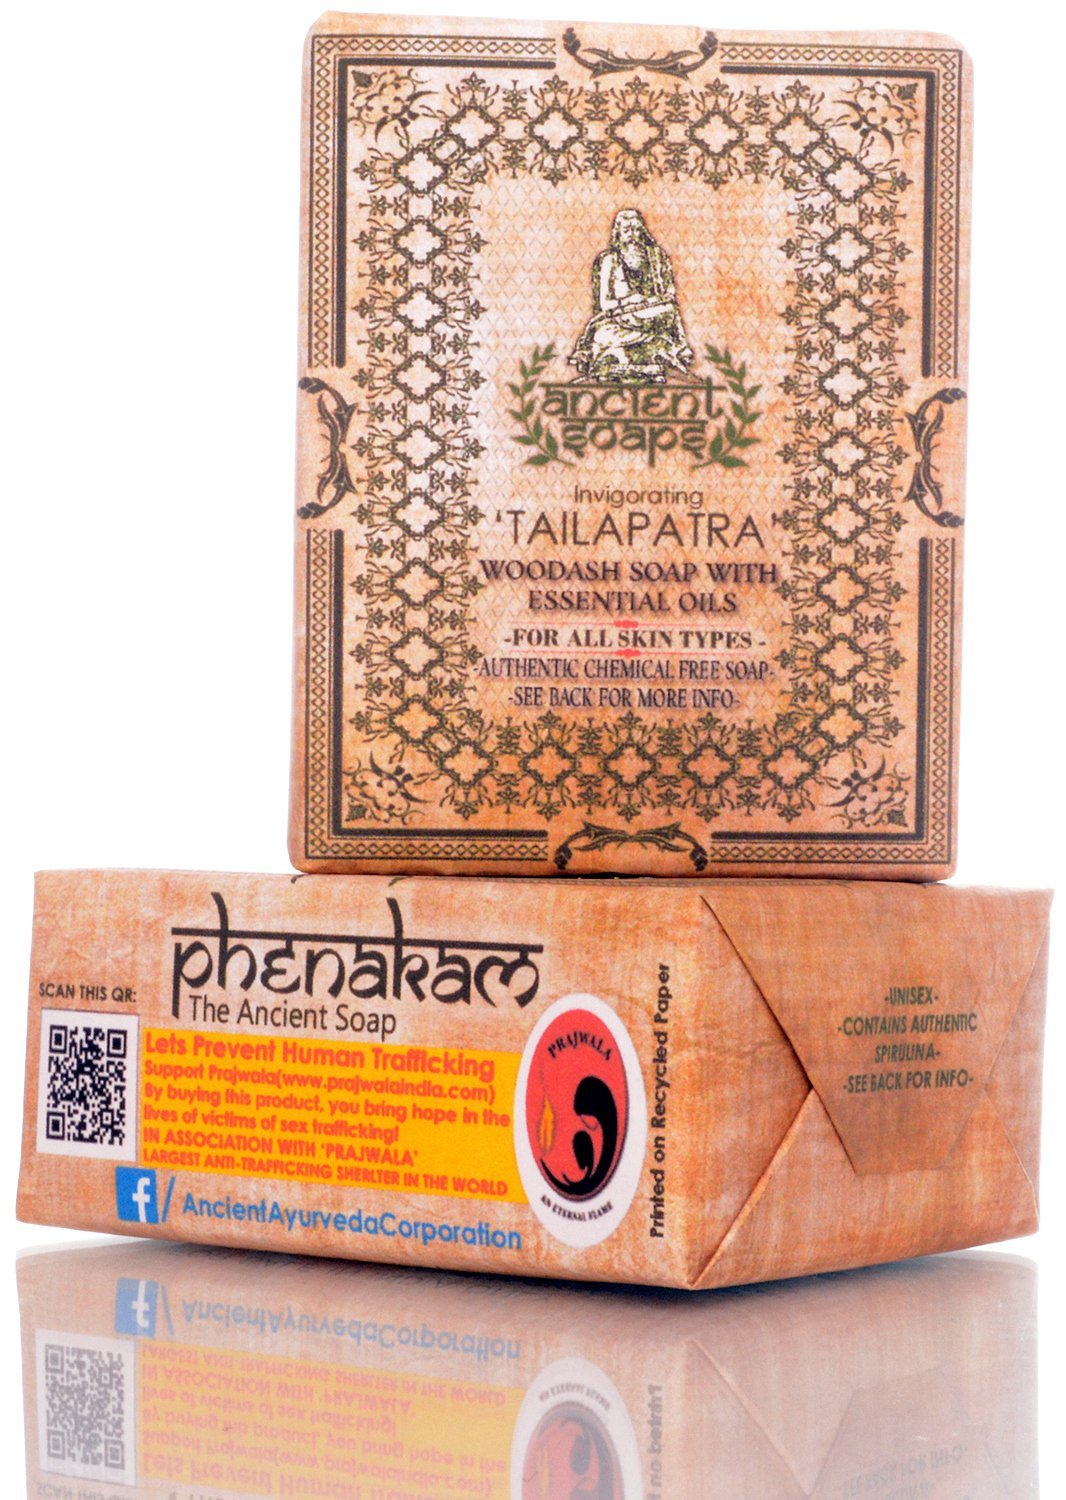 Ancient Ayurveda Ancient Soaps Invigorating Tailapatra For All Skin